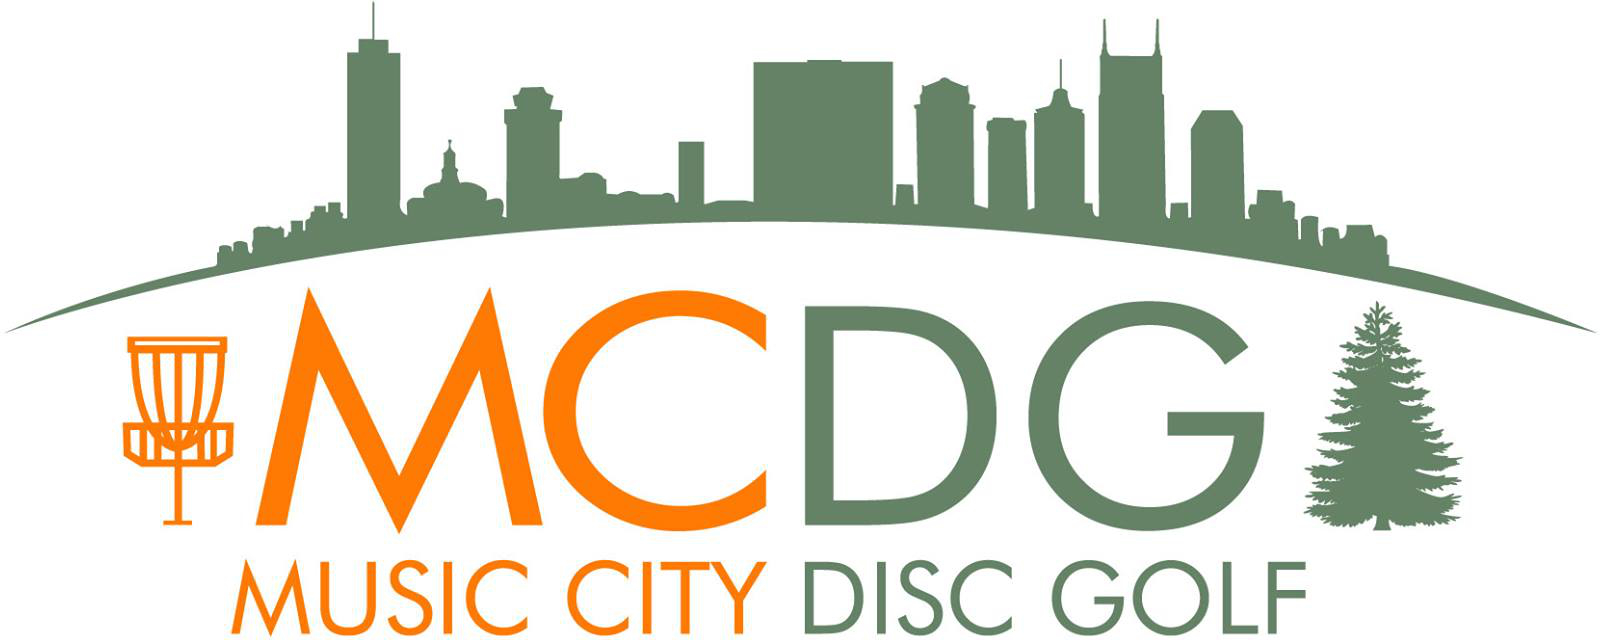 MCDG large logo with city